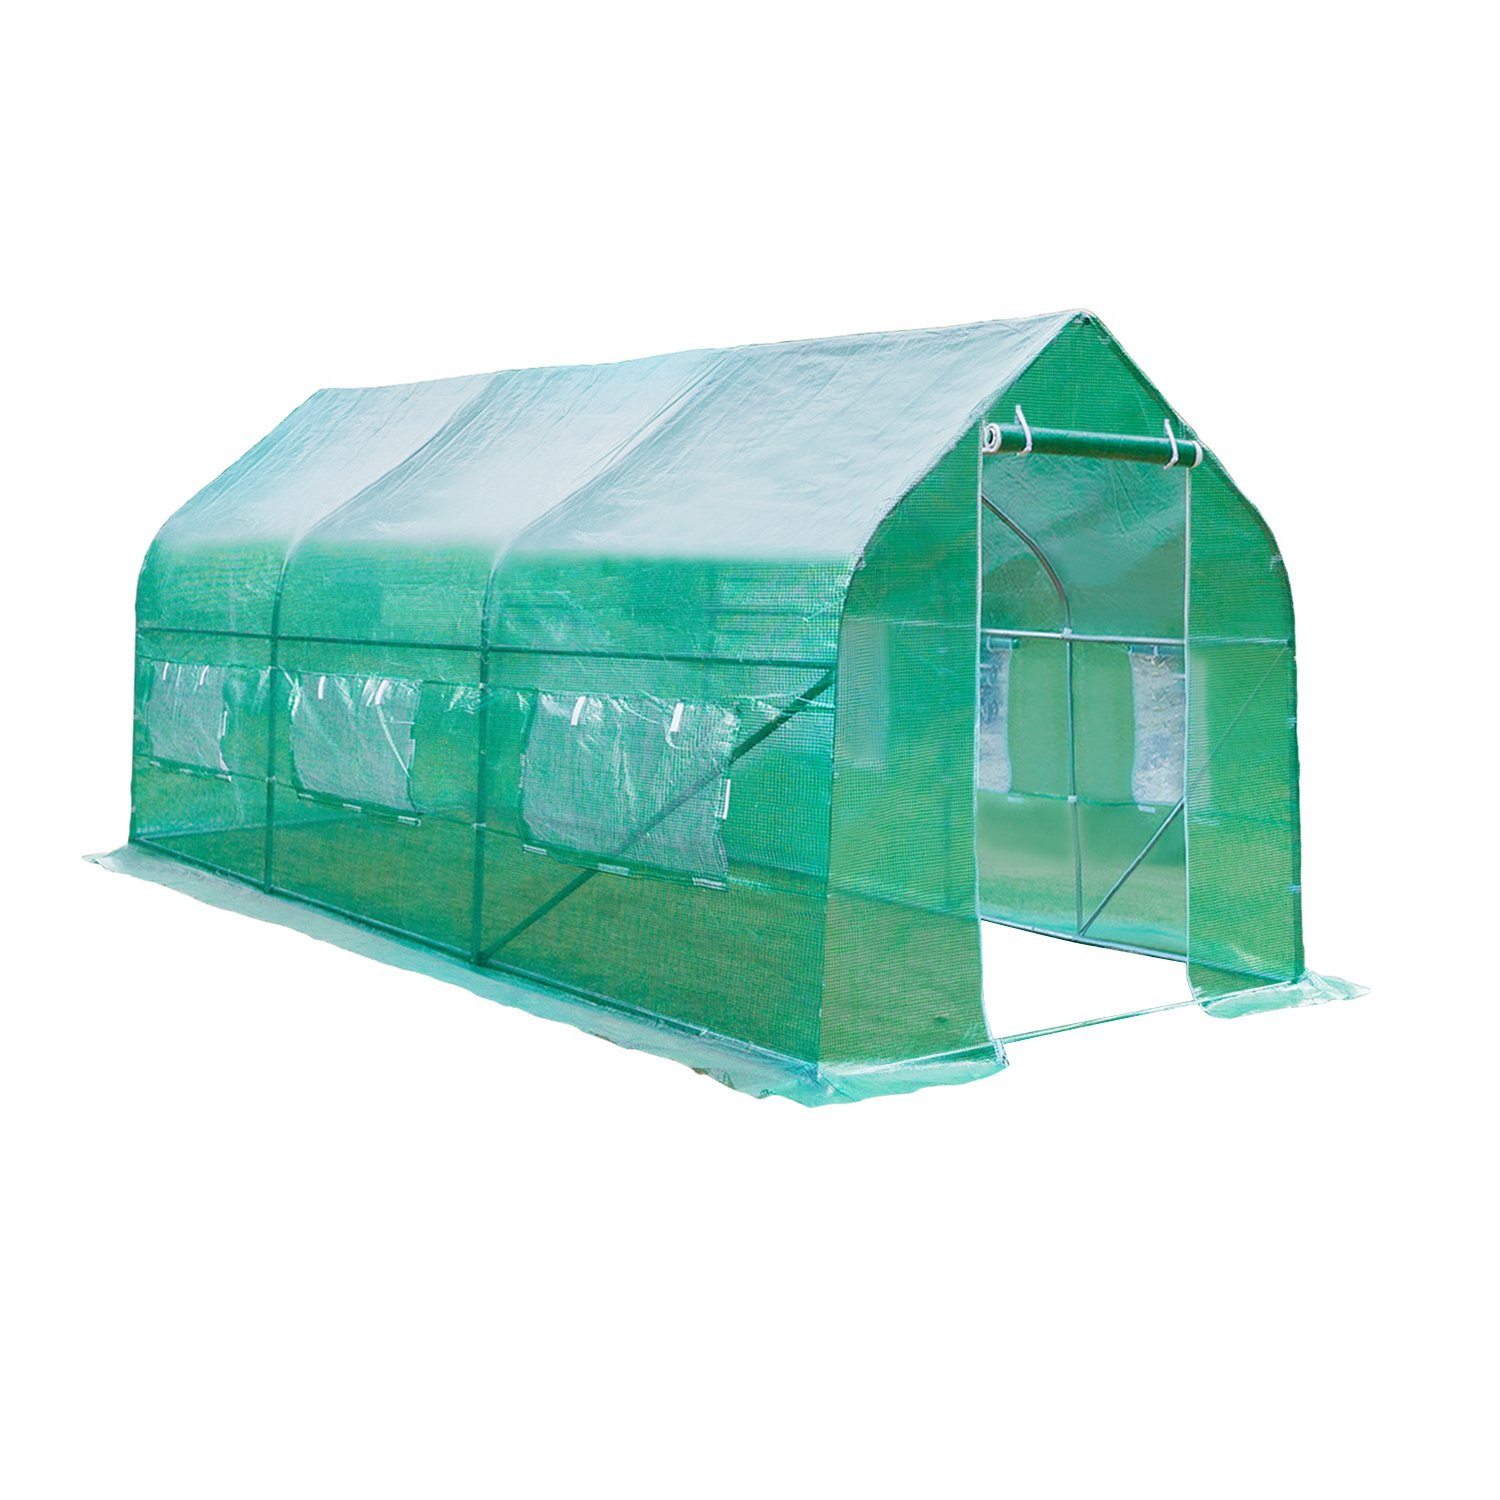 Z ZTDM 15′x7′x7' Greenhouse Kits Supplies, Protable Home Garden DIY Plants Shed, Outdoor Backyard Walk in Greenhouse Flower Protective Shelter for Window or Summer Grow Tents with Anti-UV Cover